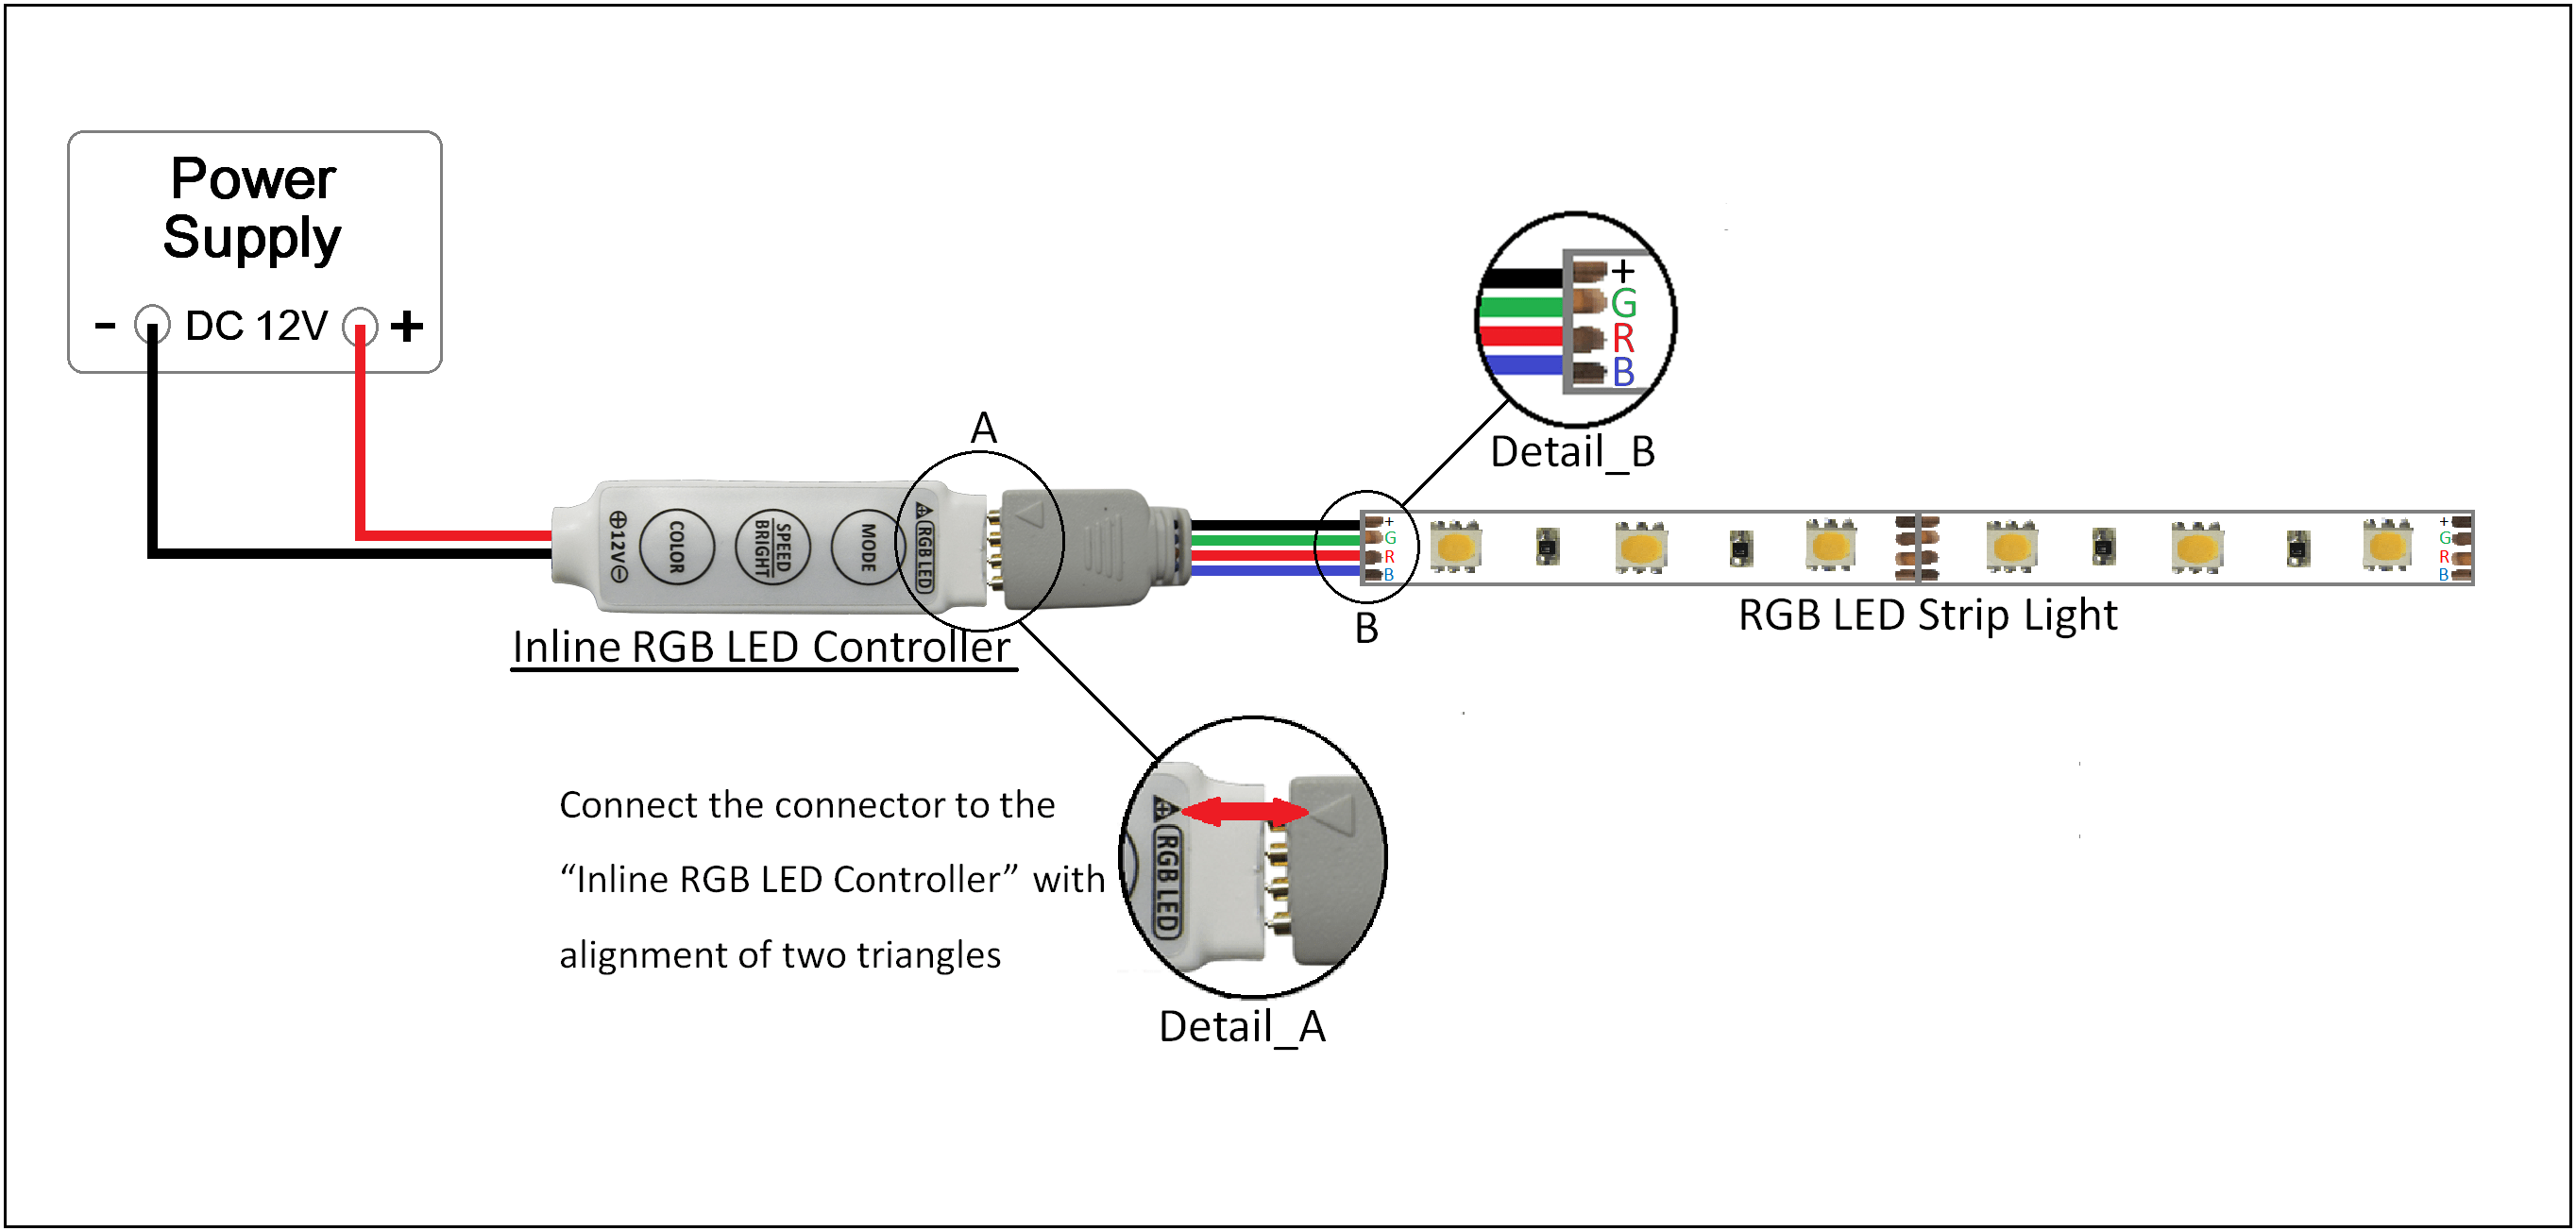 New Wiring Diagram For Rope Lights Diagrams Digramssample Diagramimages Wiringdiagramsample Wiringdiagram Led Strip Lighting Rgb Led Strip Lights Rgb Led